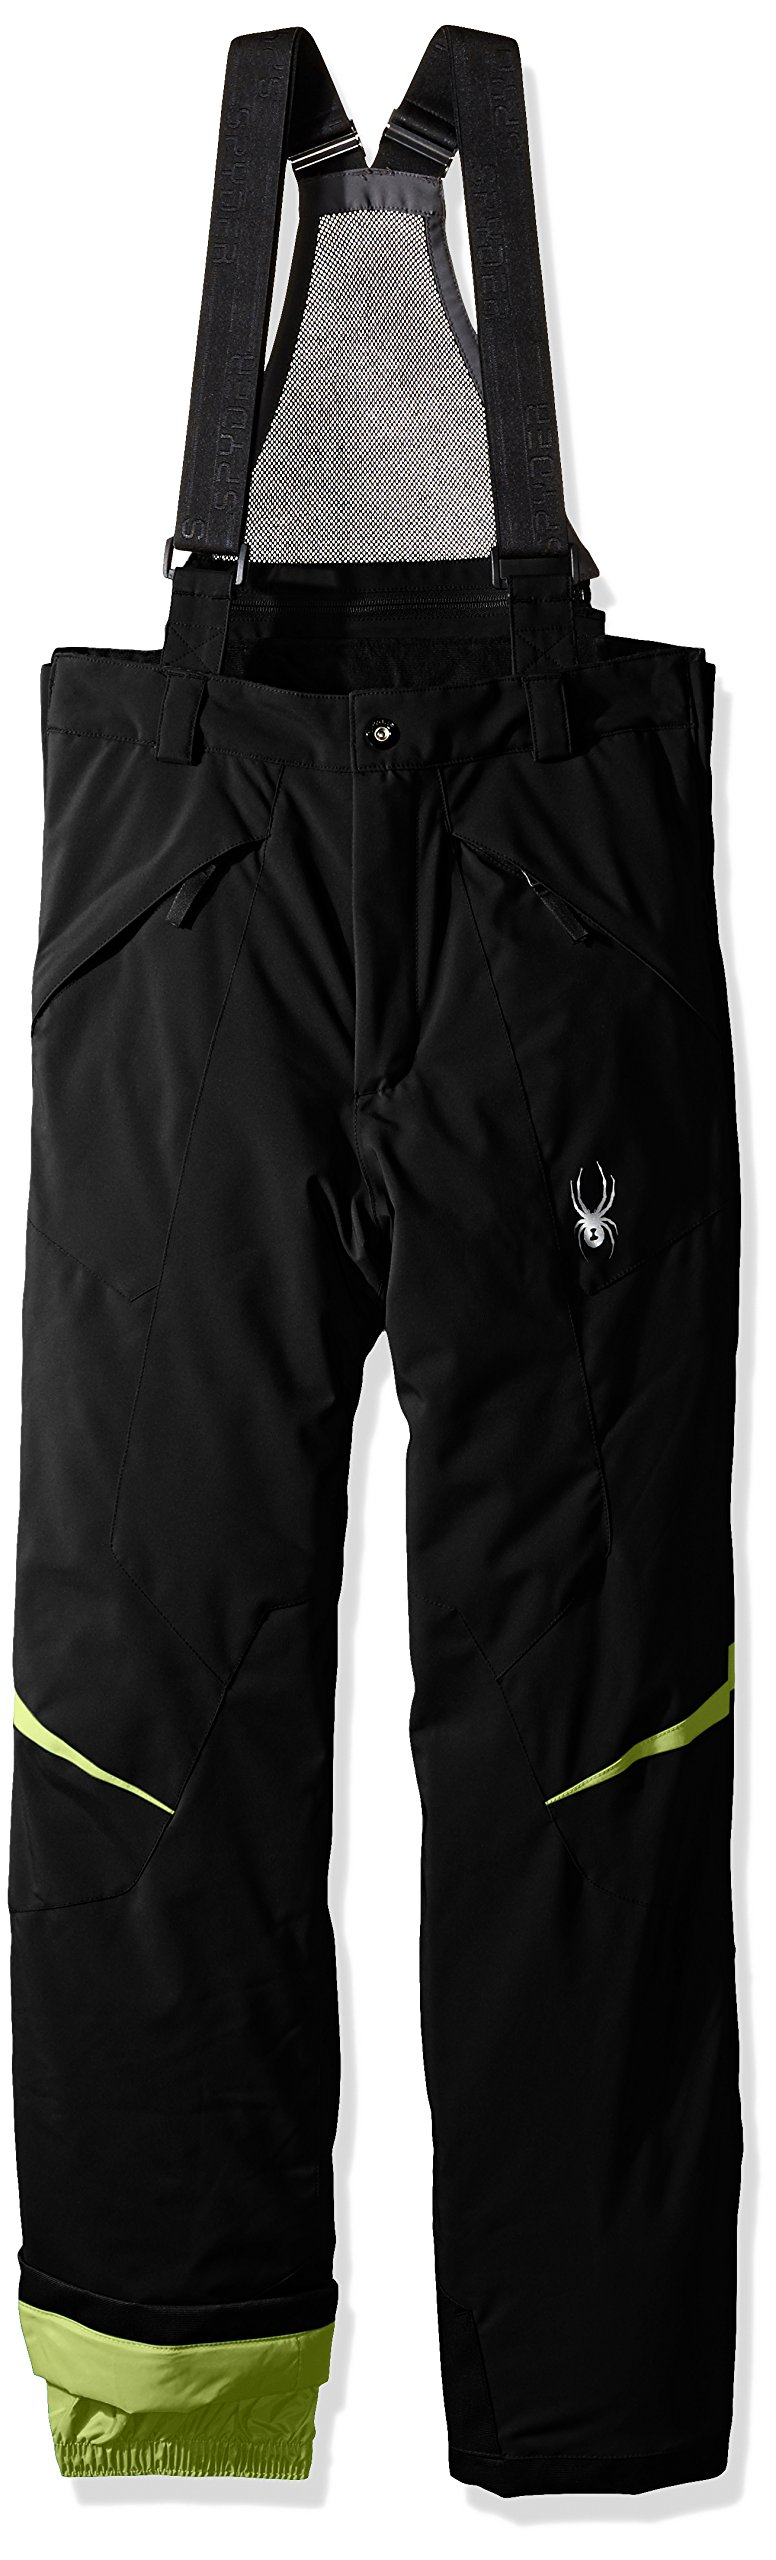 Spyder Boys Force Pants, Size 12, Black/Bryte Green